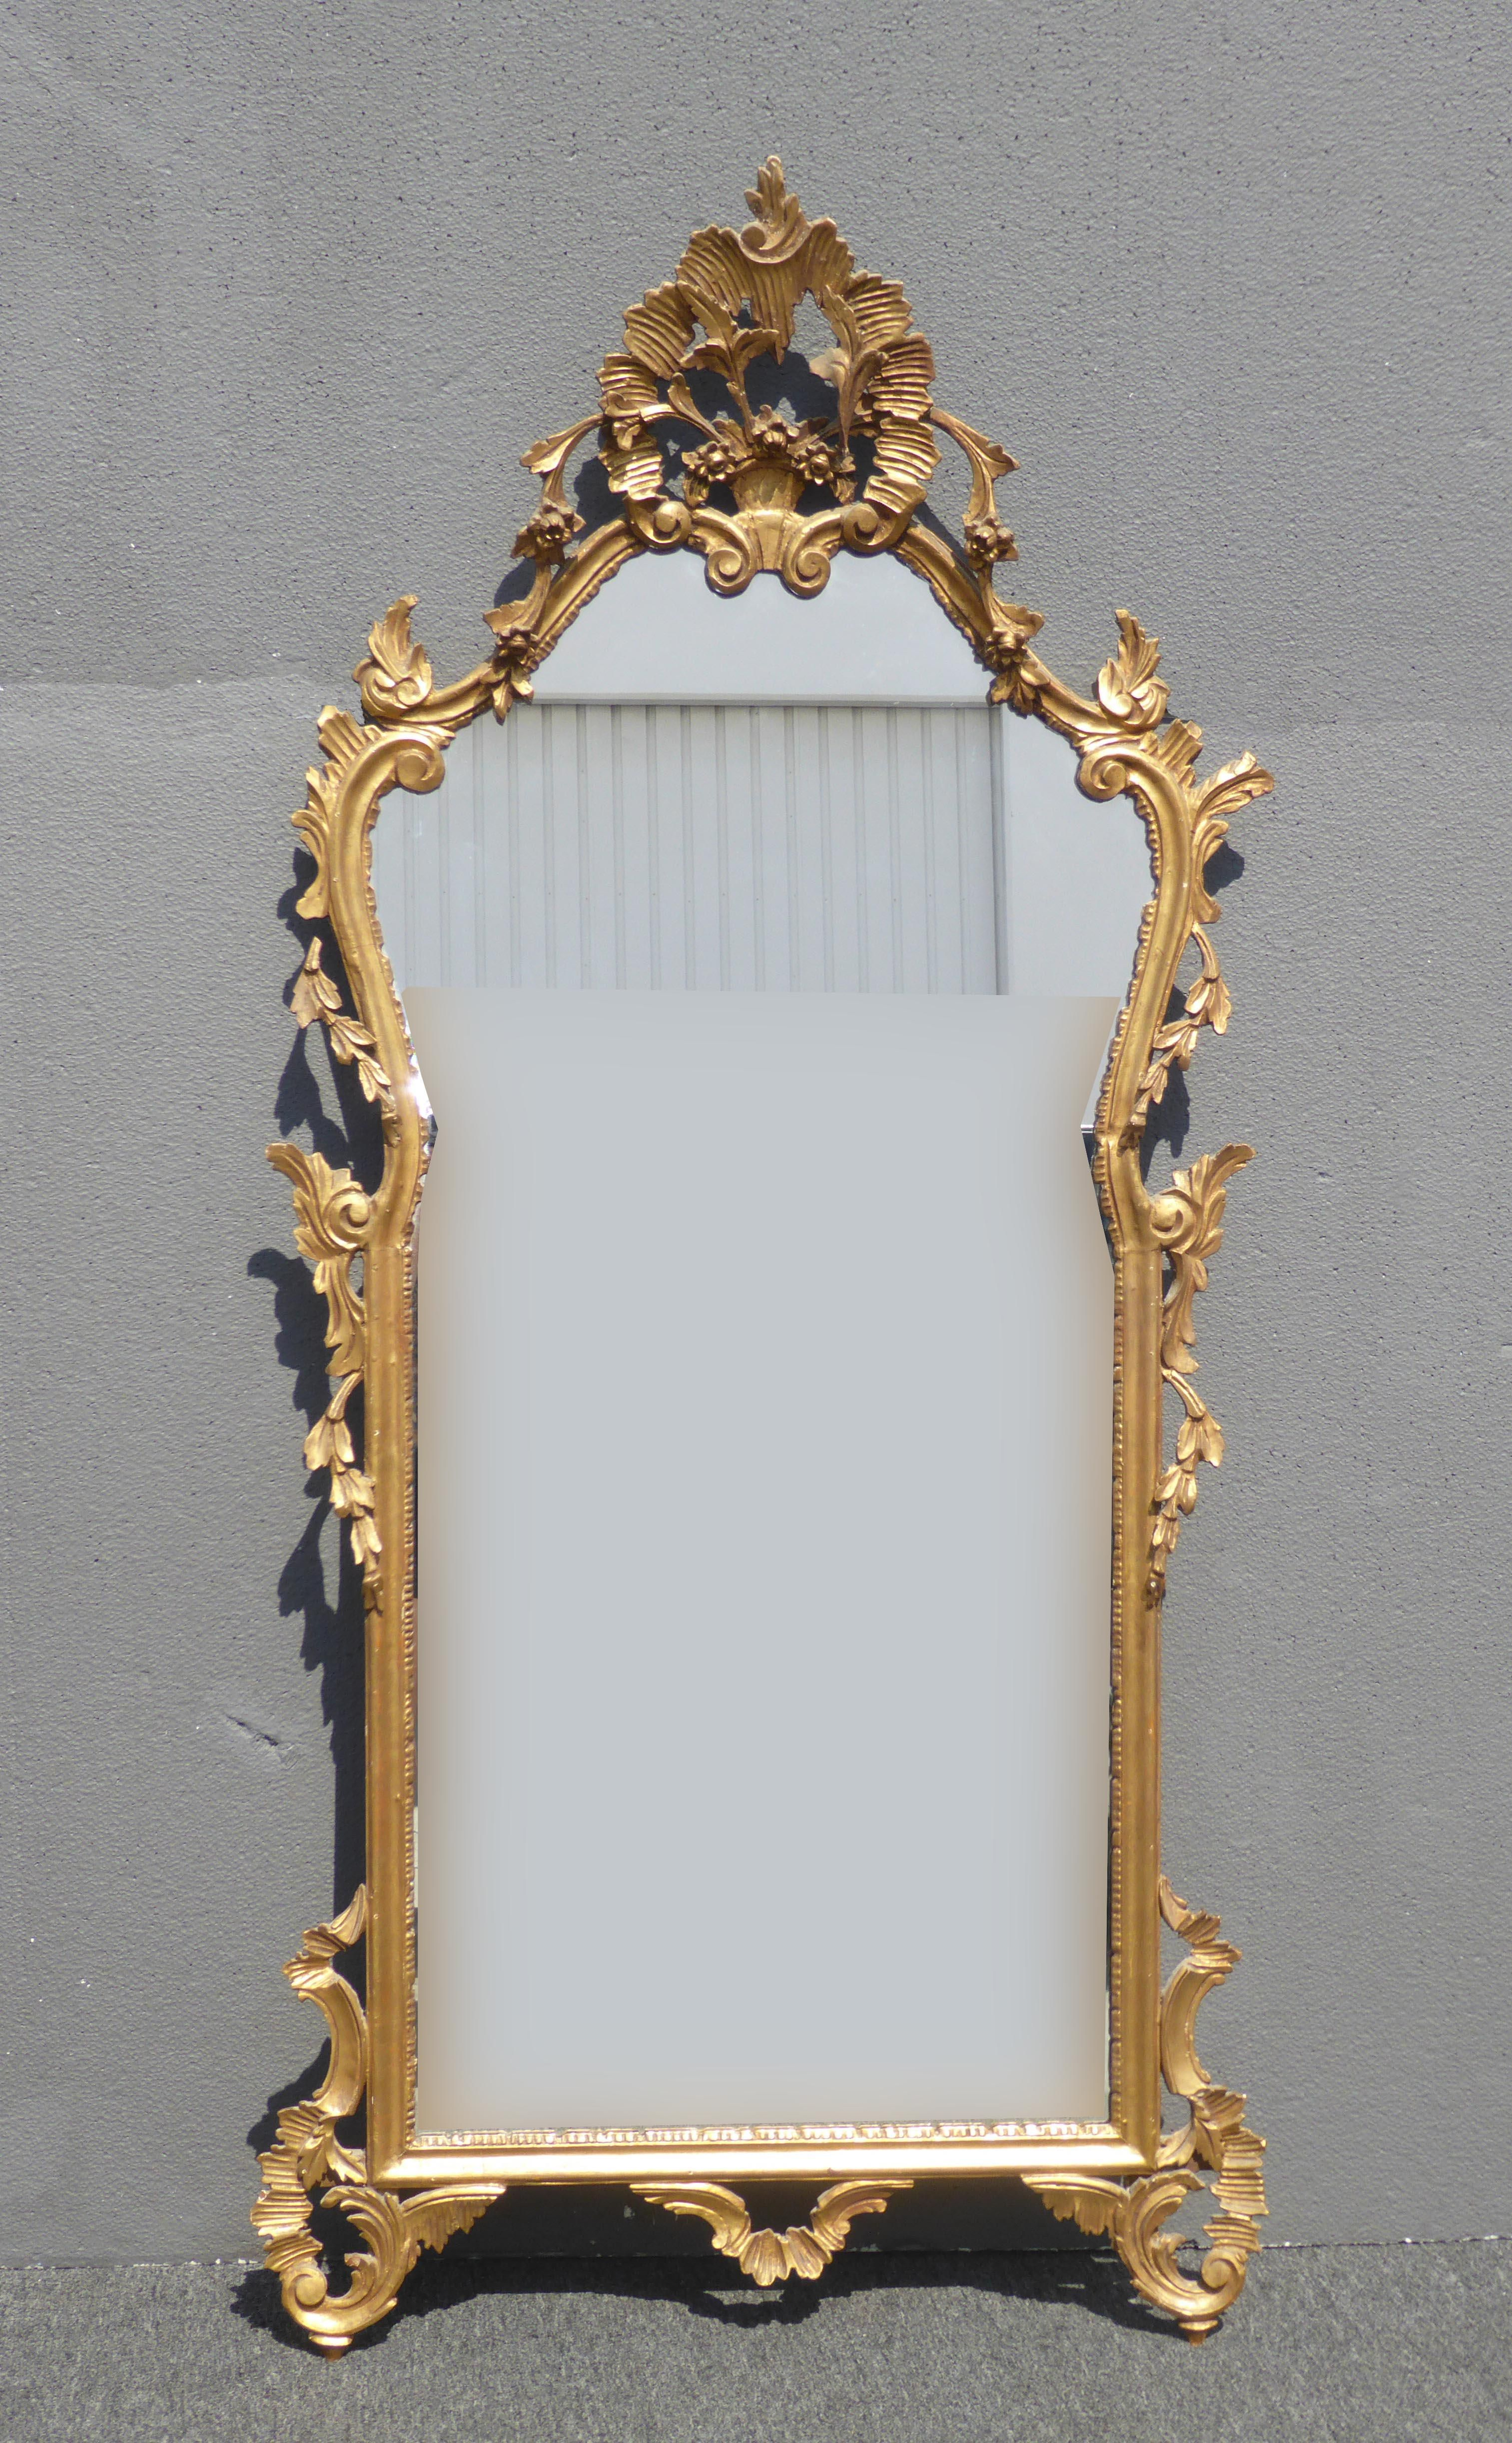 Antique French Louis Xvi Rococo Ornate Gold Wall Mirror Made In Italy Gold Mirror Wall Antique Gold Mirror Gold Walls [ 4888 x 3026 Pixel ]